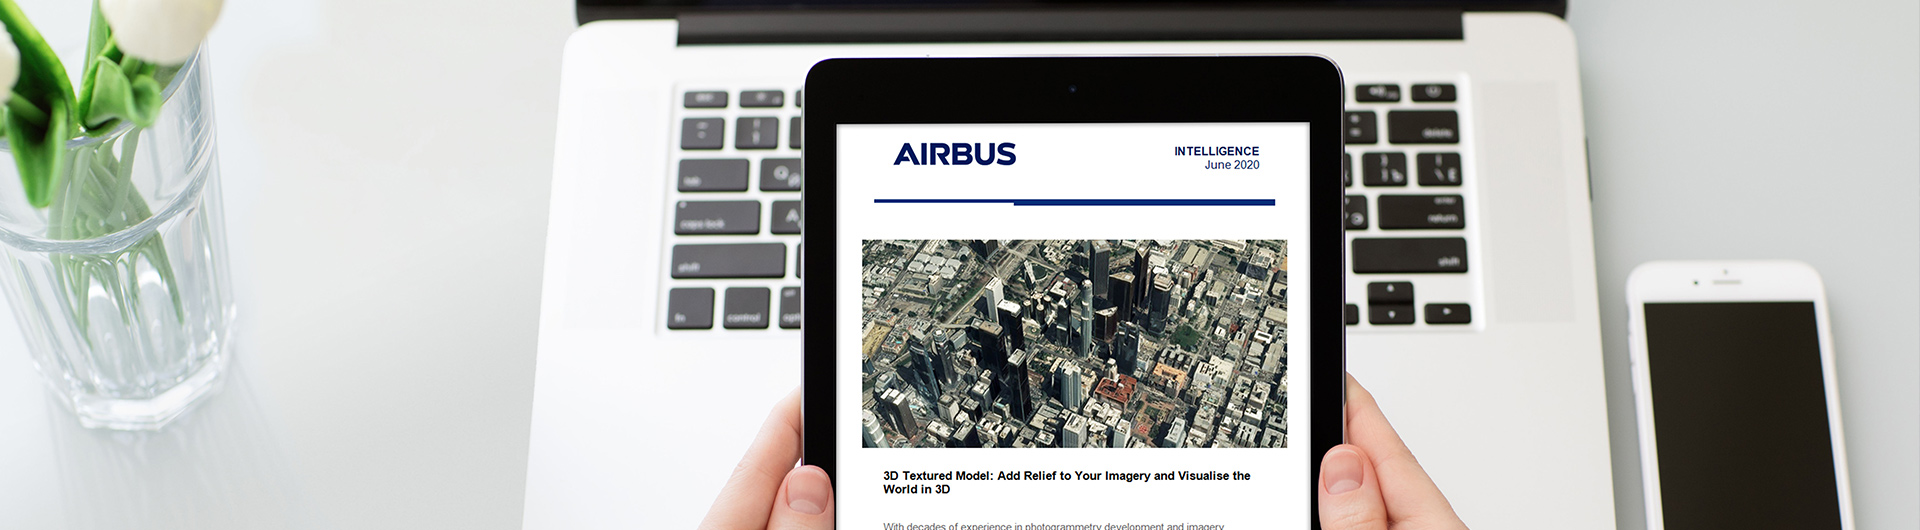 Airbus - Thank you for signing up our News – ipad